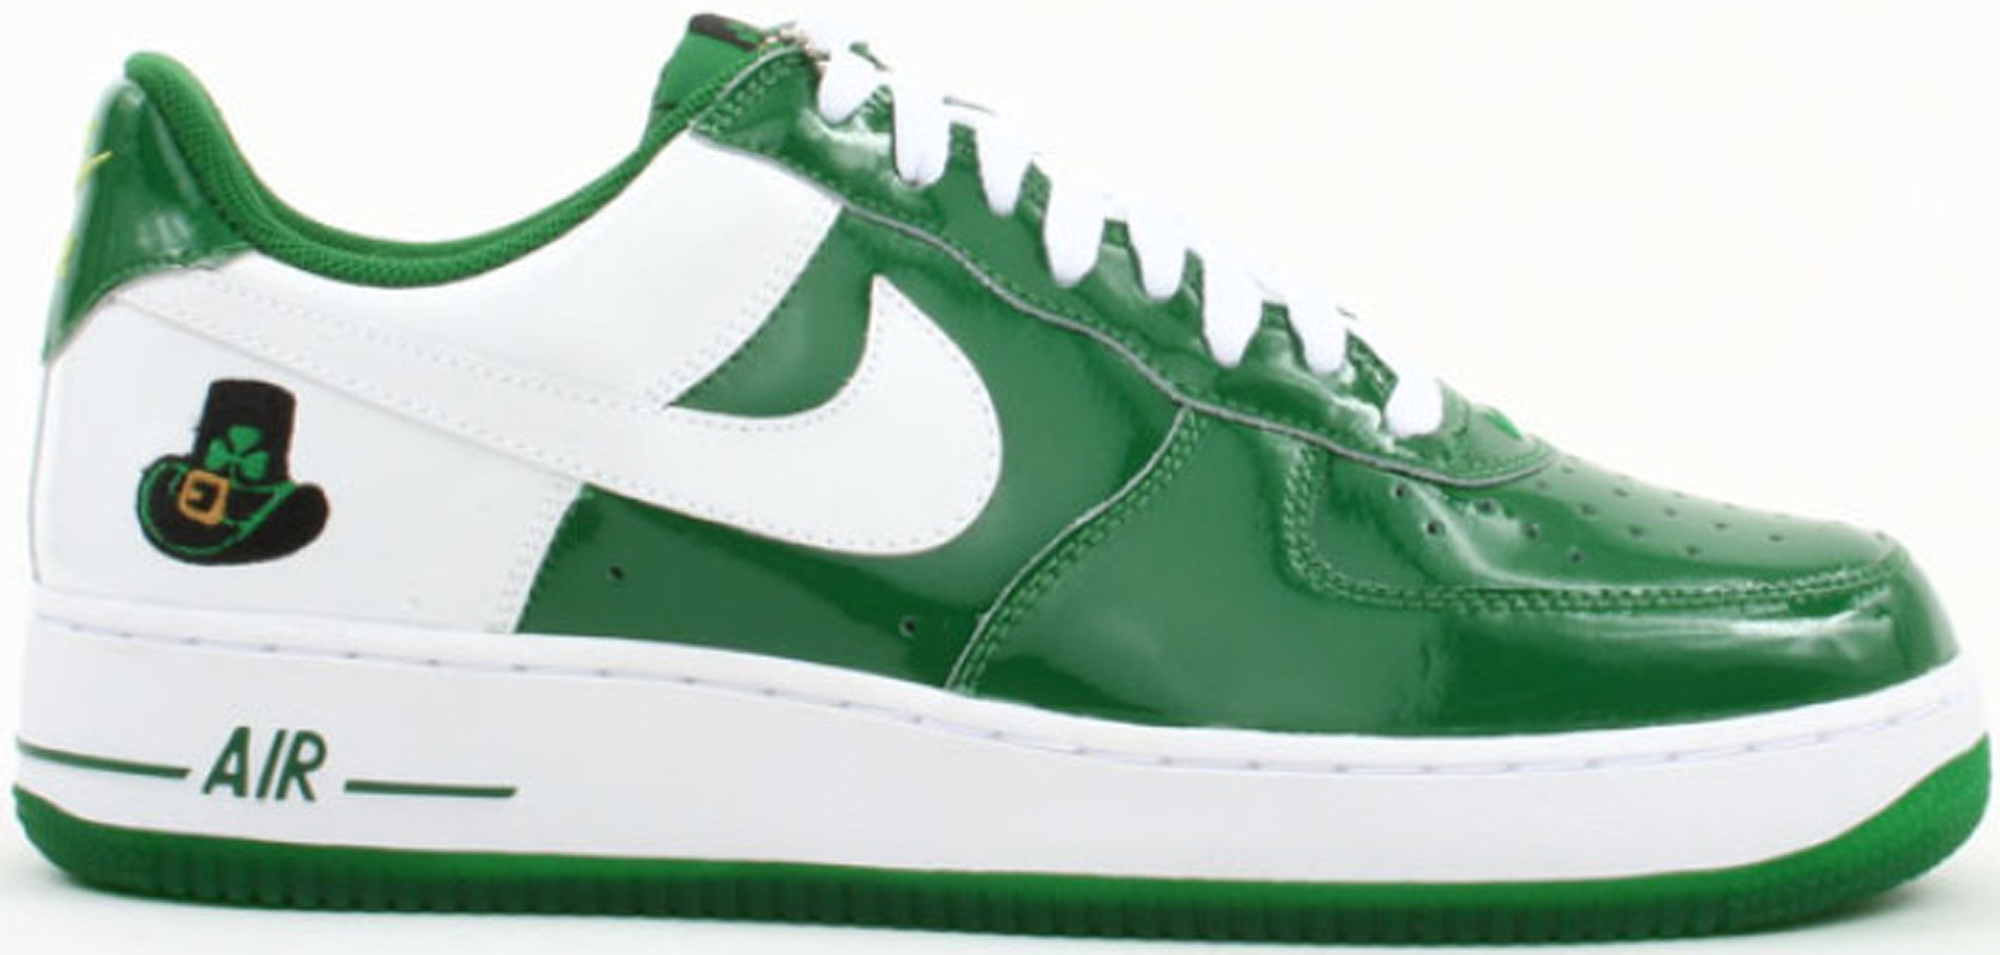 Air Force 1 Low St. Patrick's Day (2006)